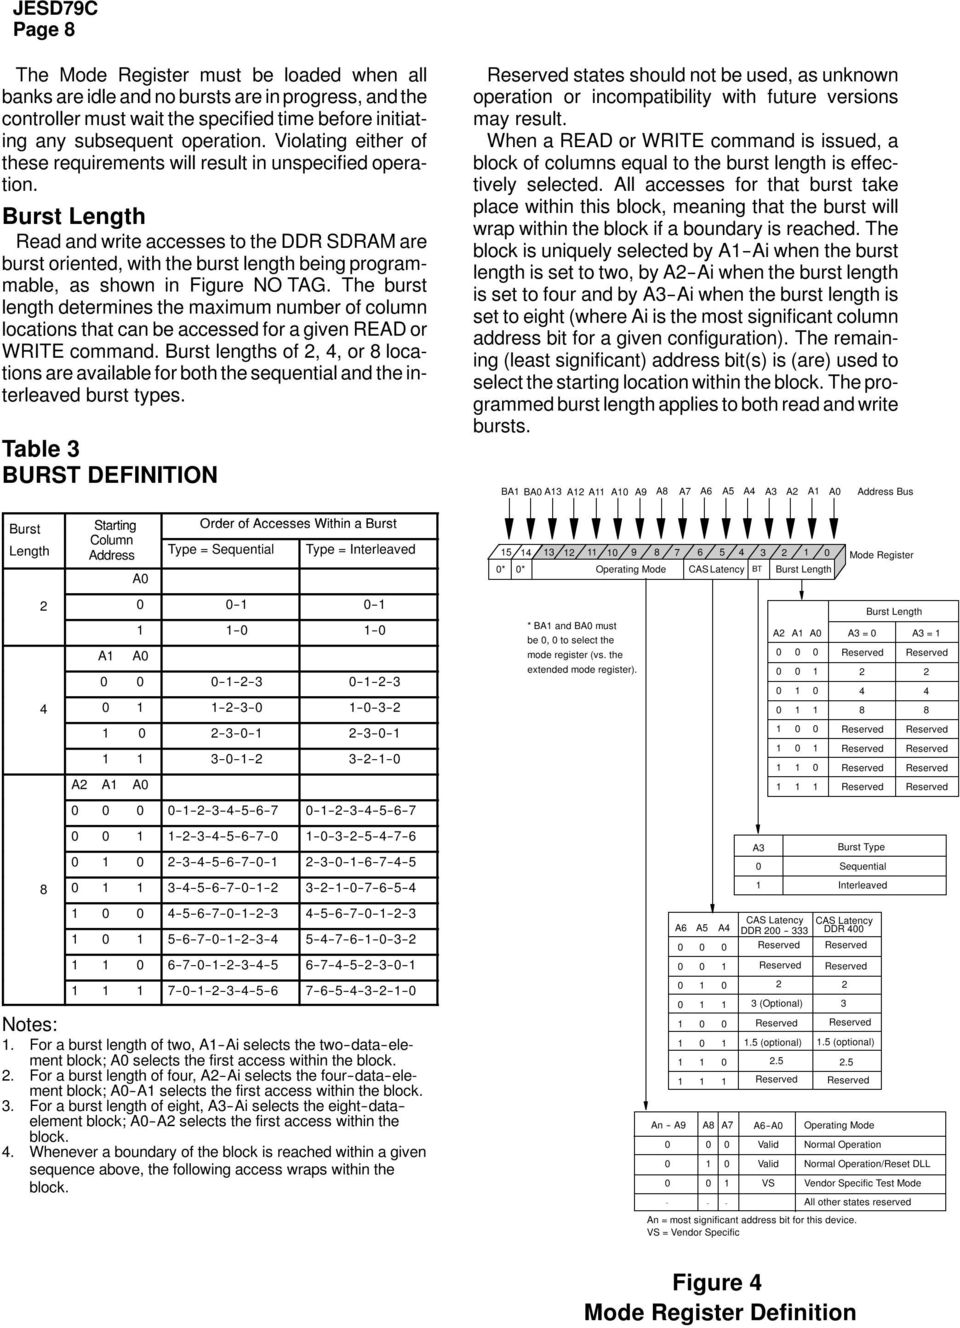 Burst Length Read and write accesses to the DDR SDRAM are burst oriented, with the burst length being programmable, as shown in Figure NO TAG.